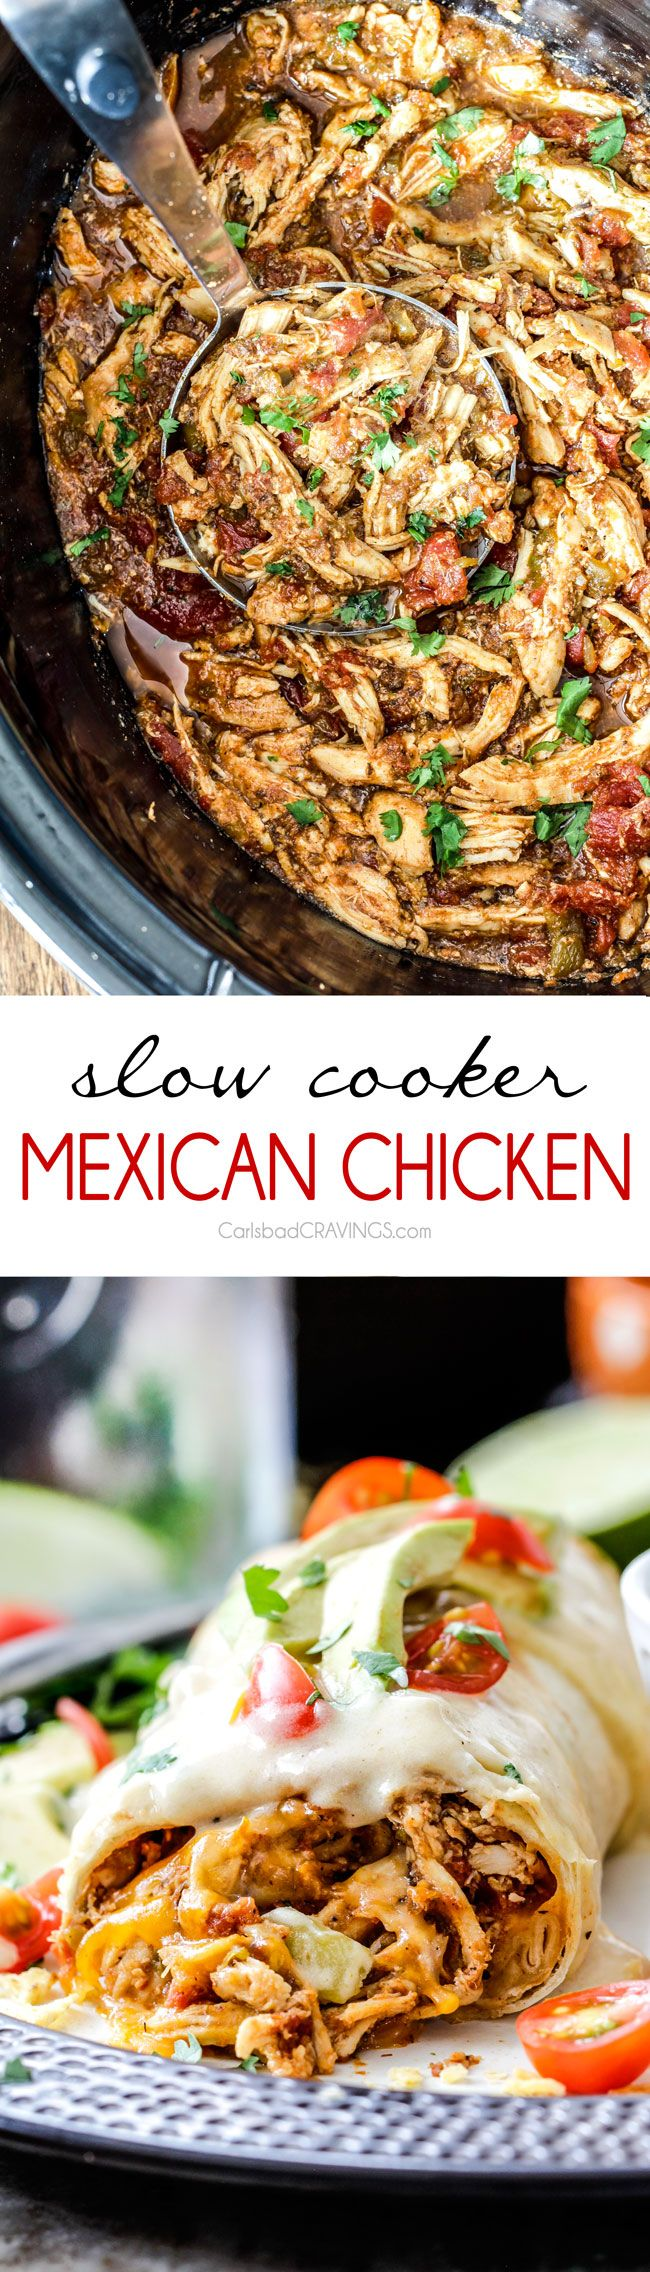 linen jackets for women Easy Slow Cooker Shredded Mexican Chicken simmered with Mexican spices  salsa and green chilies for amazingly flavorful chicken for tacos  burritos  nachos  sou